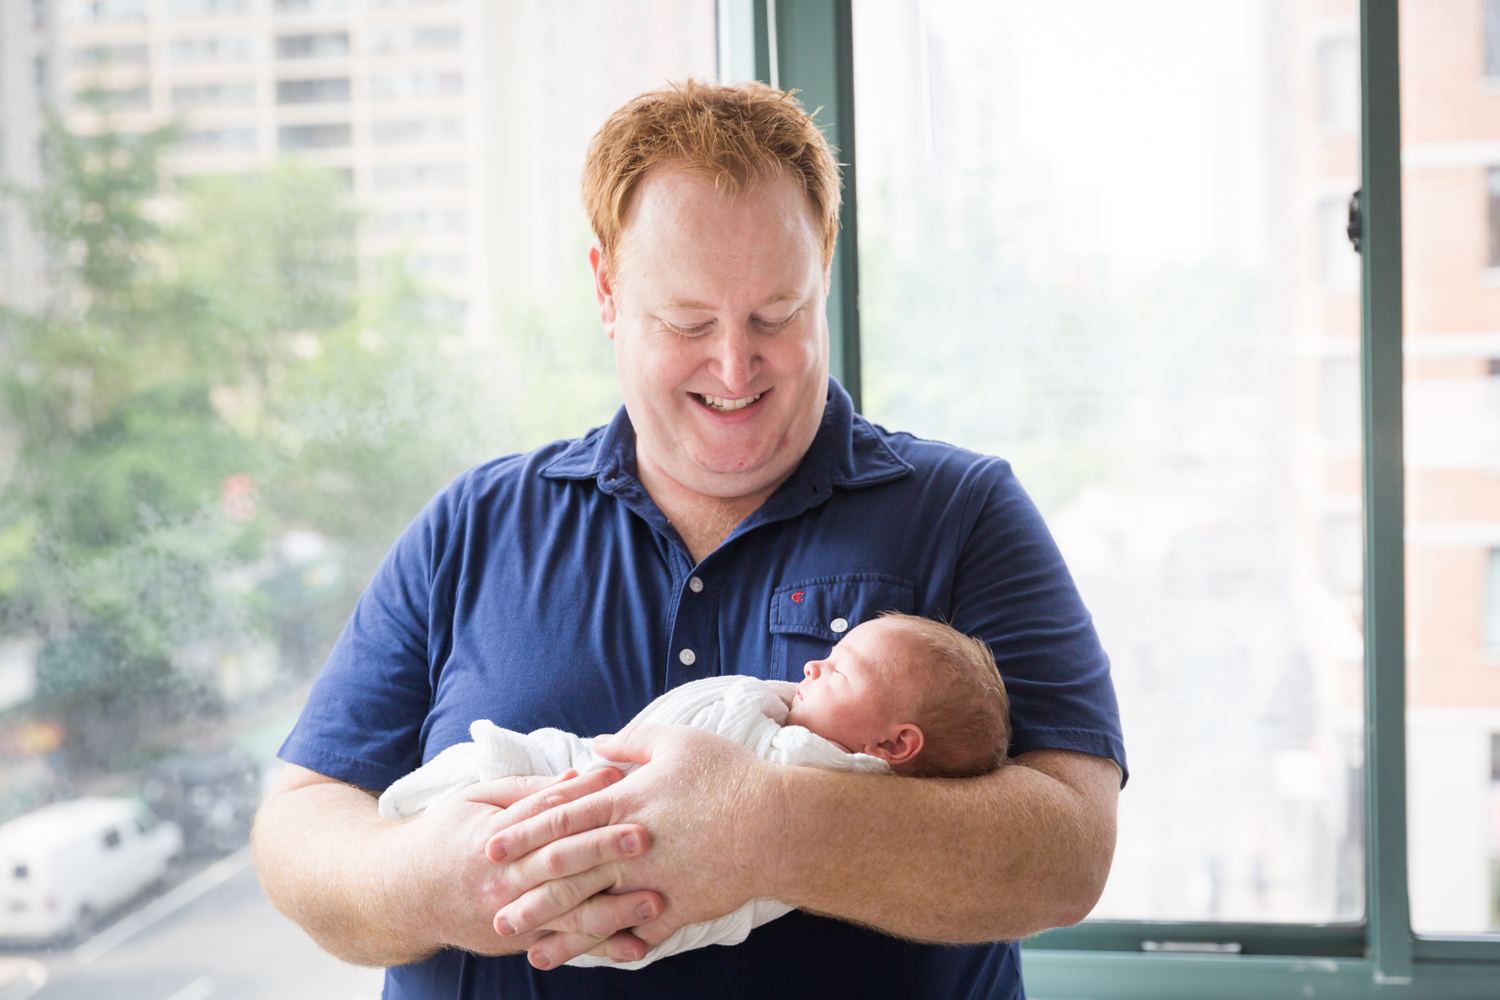 Father holding newborn baby in front of window for an article on newborn portrait tips